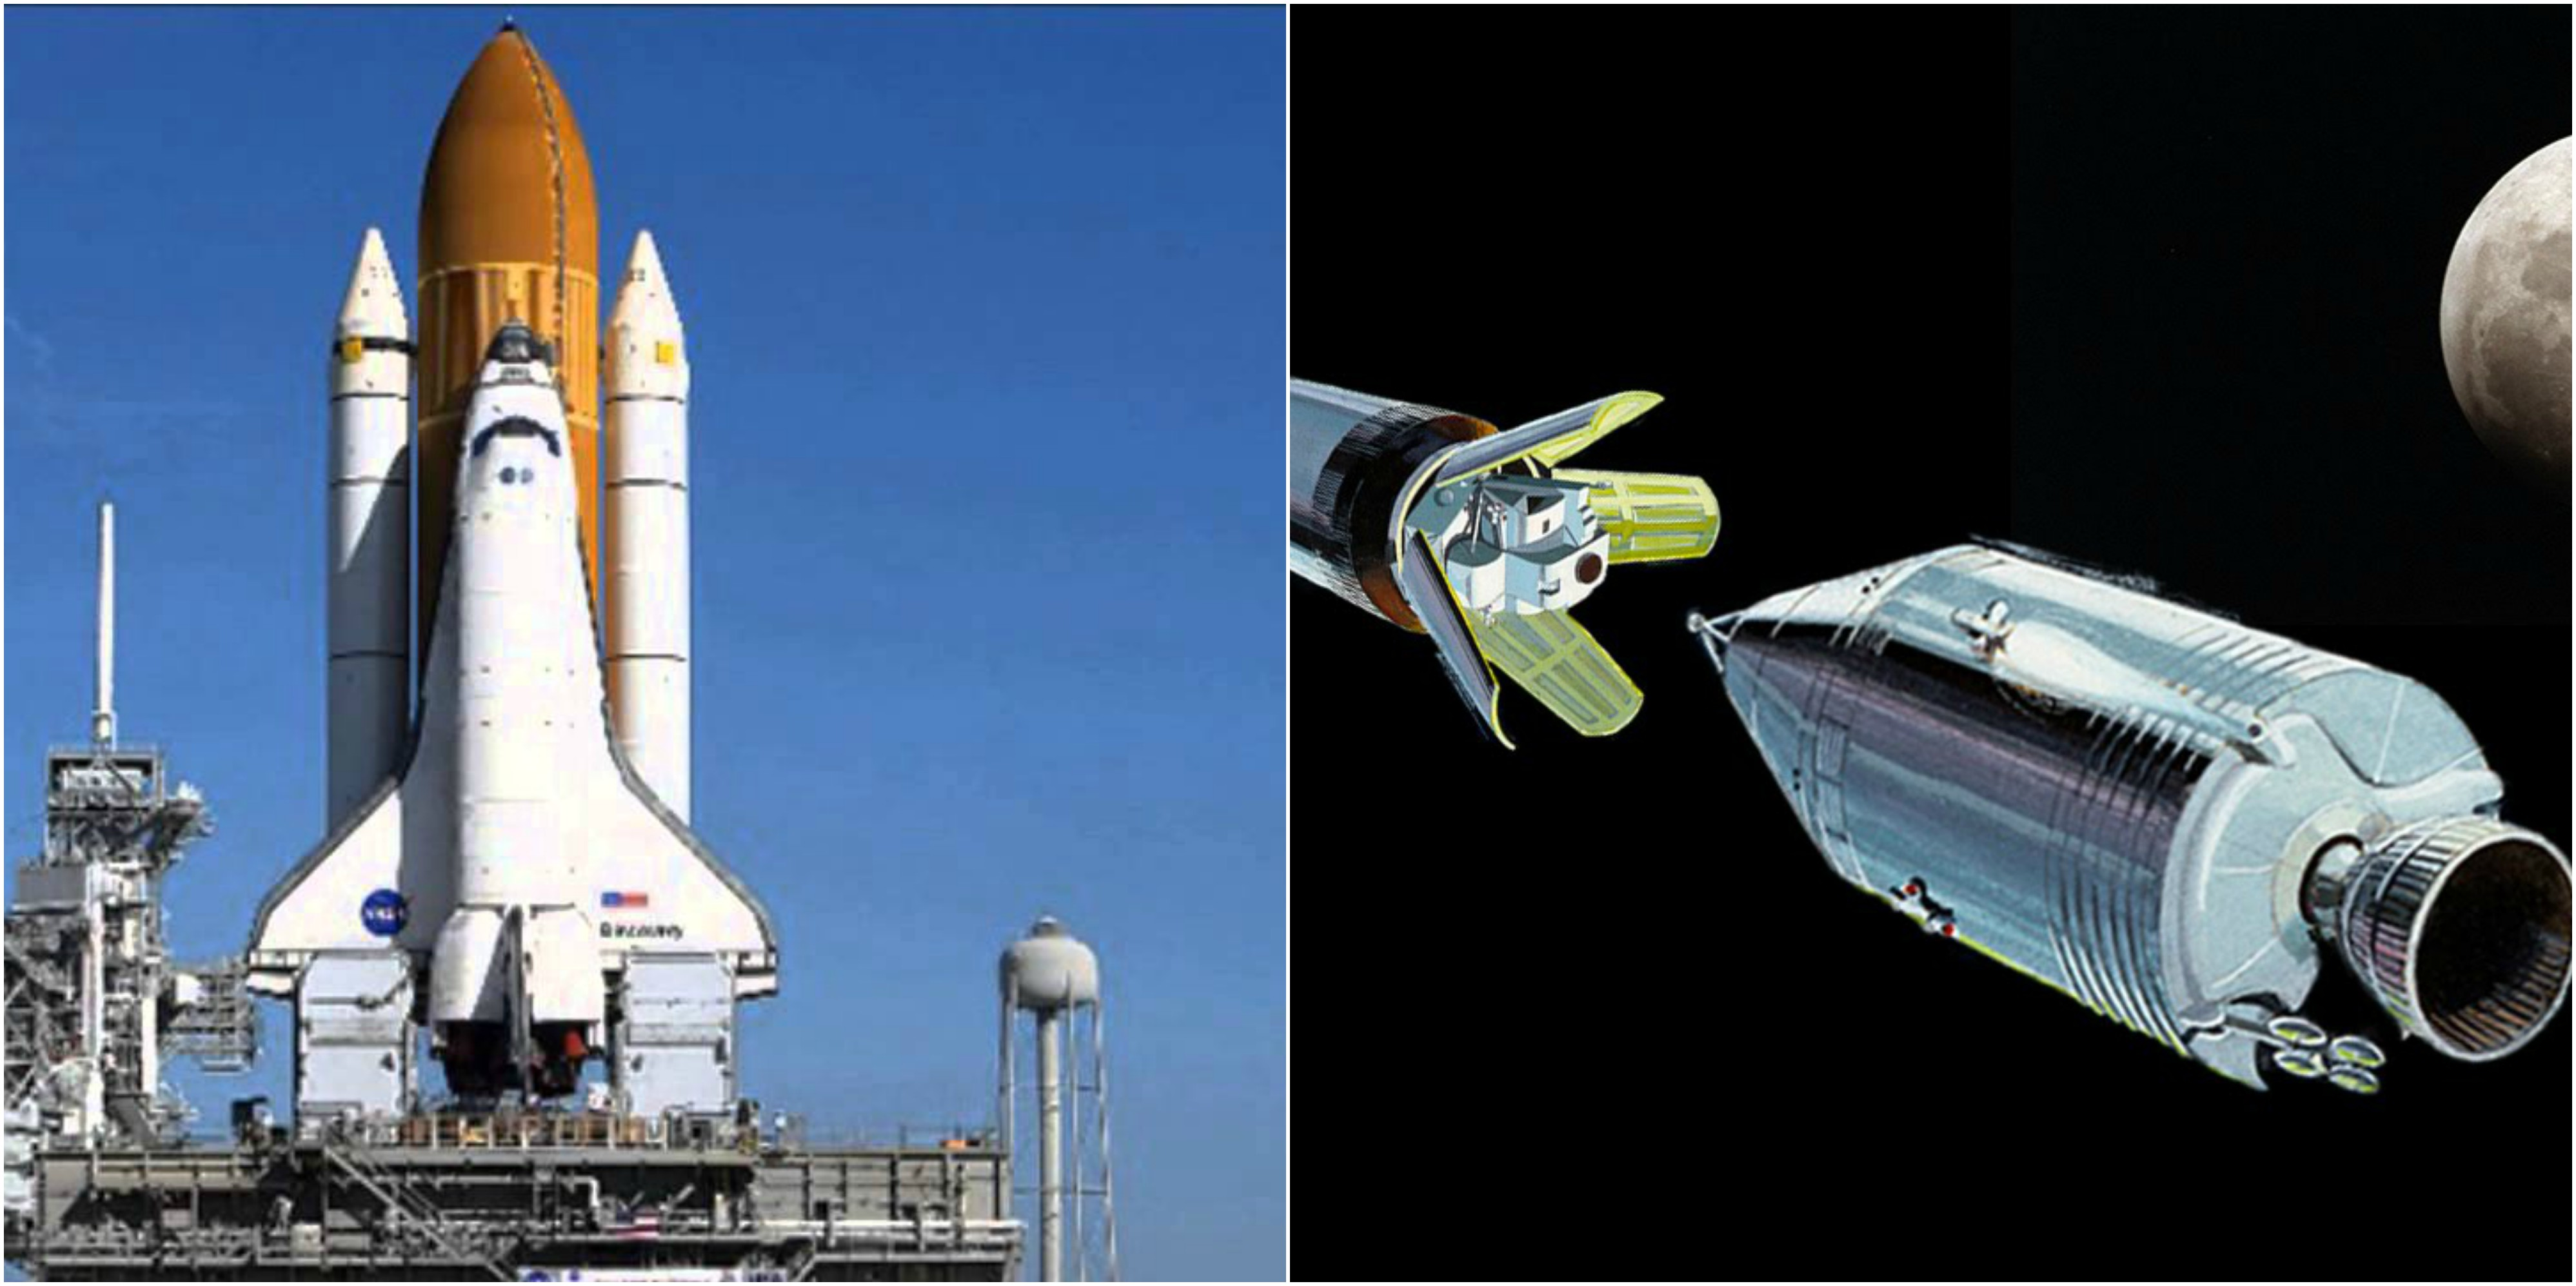 Spacecraft technology has come far since the 1960's.